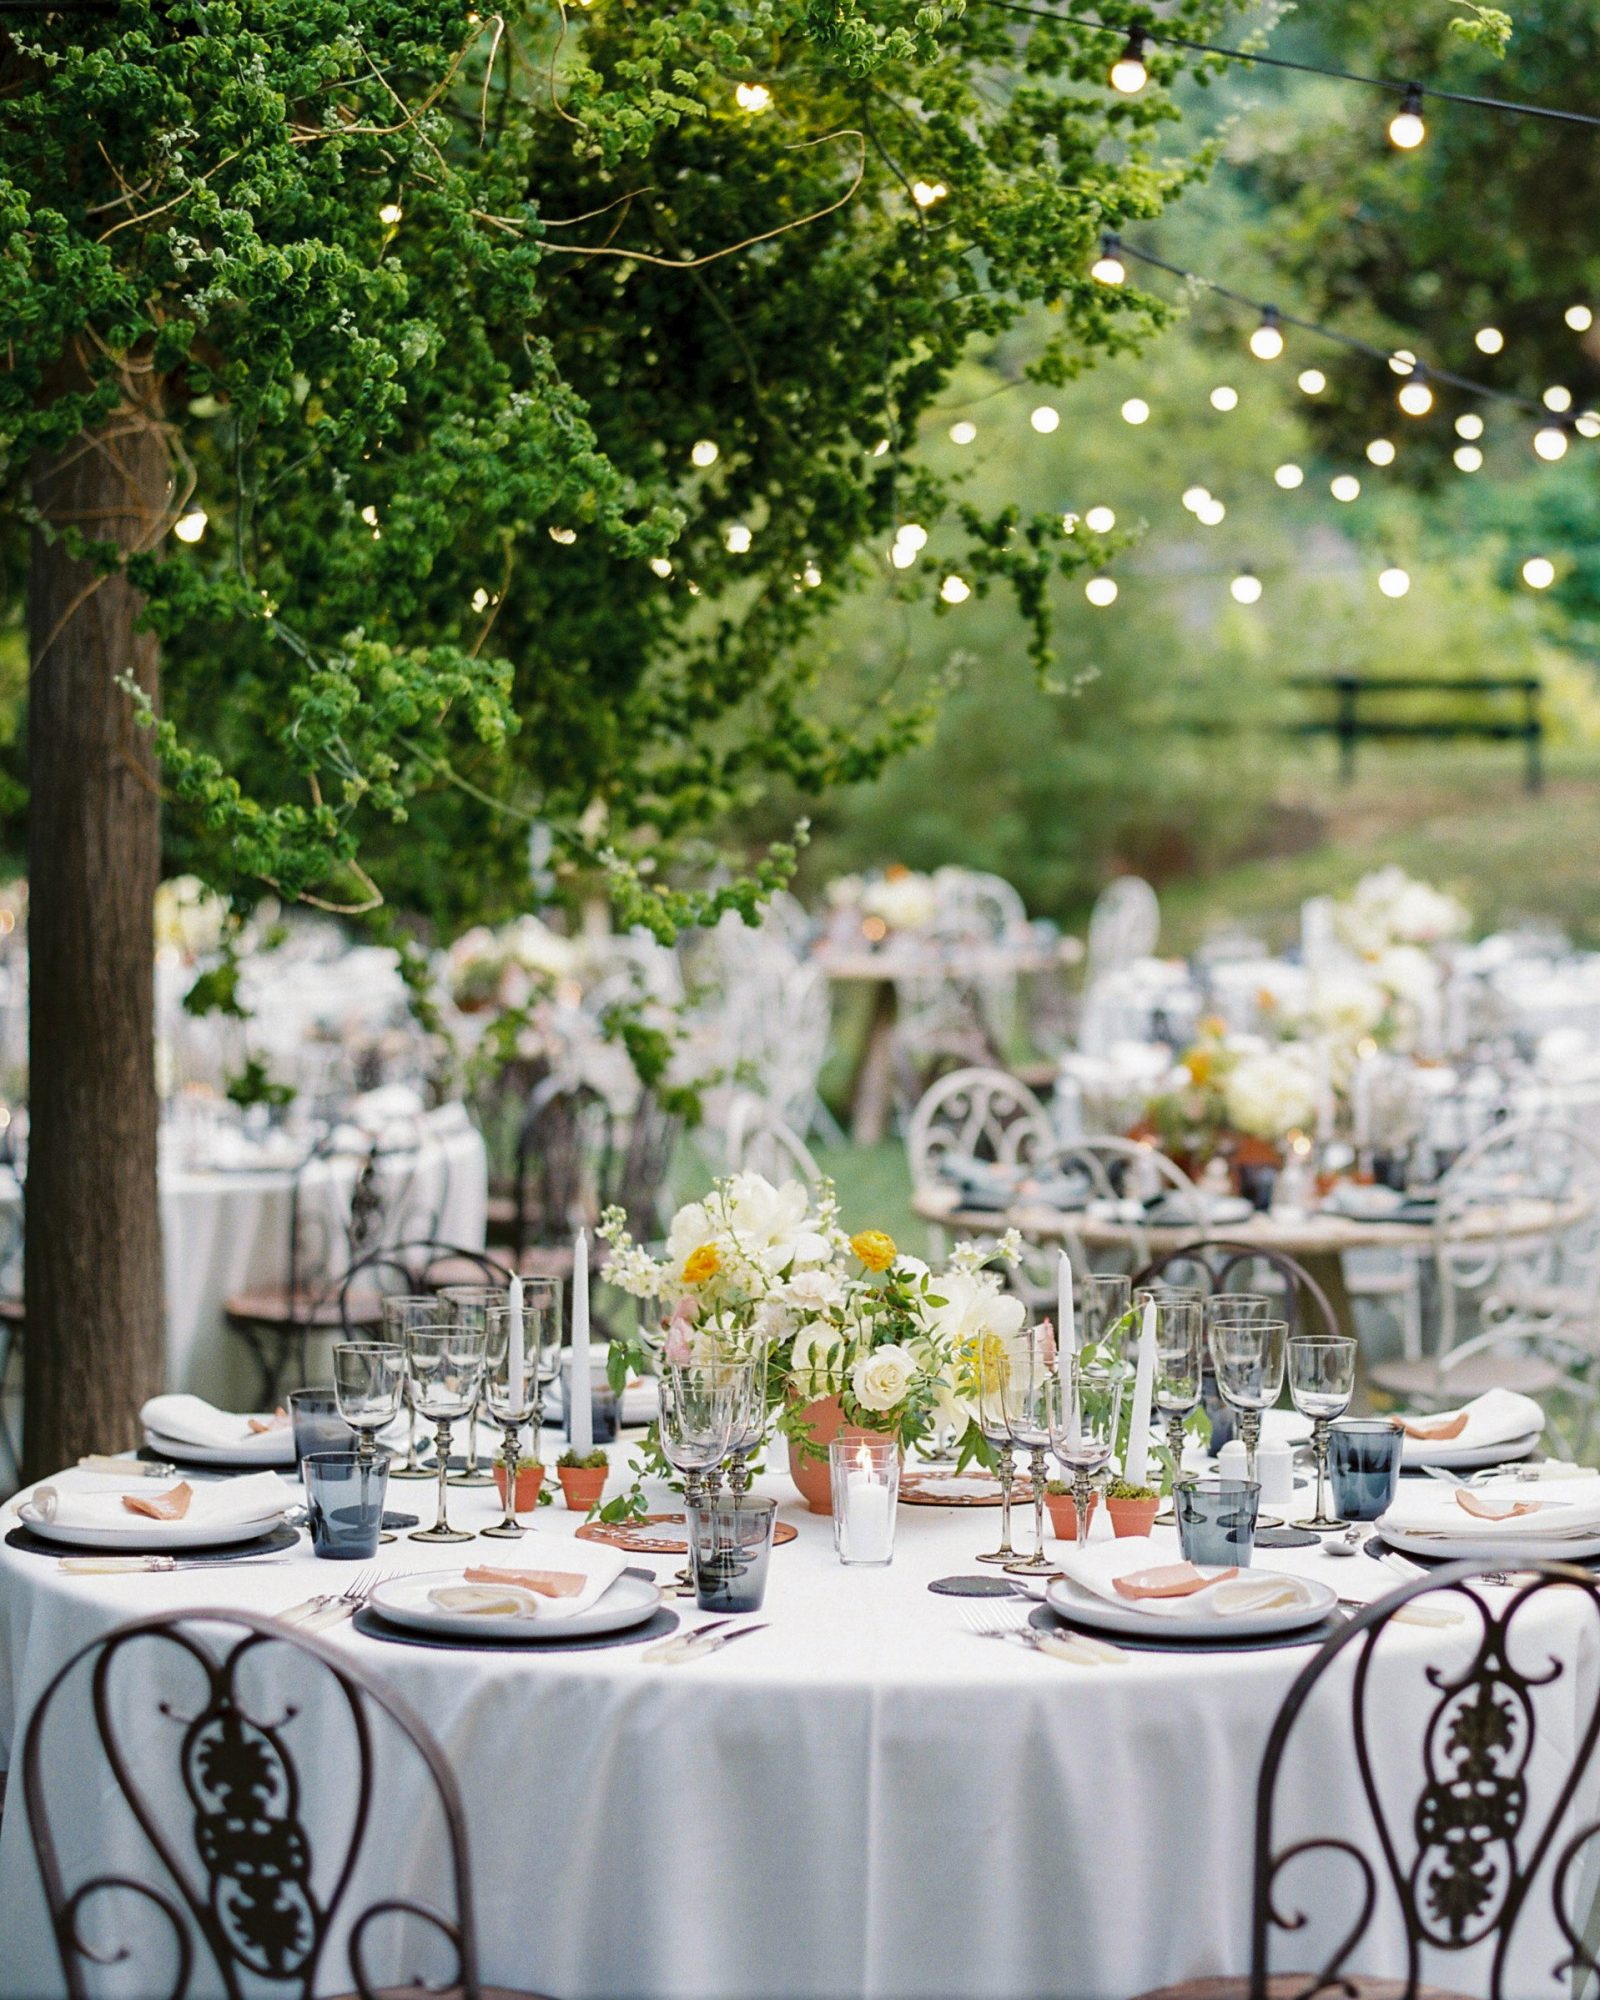 outdoor reception tables with colorful floral arrangements and candles